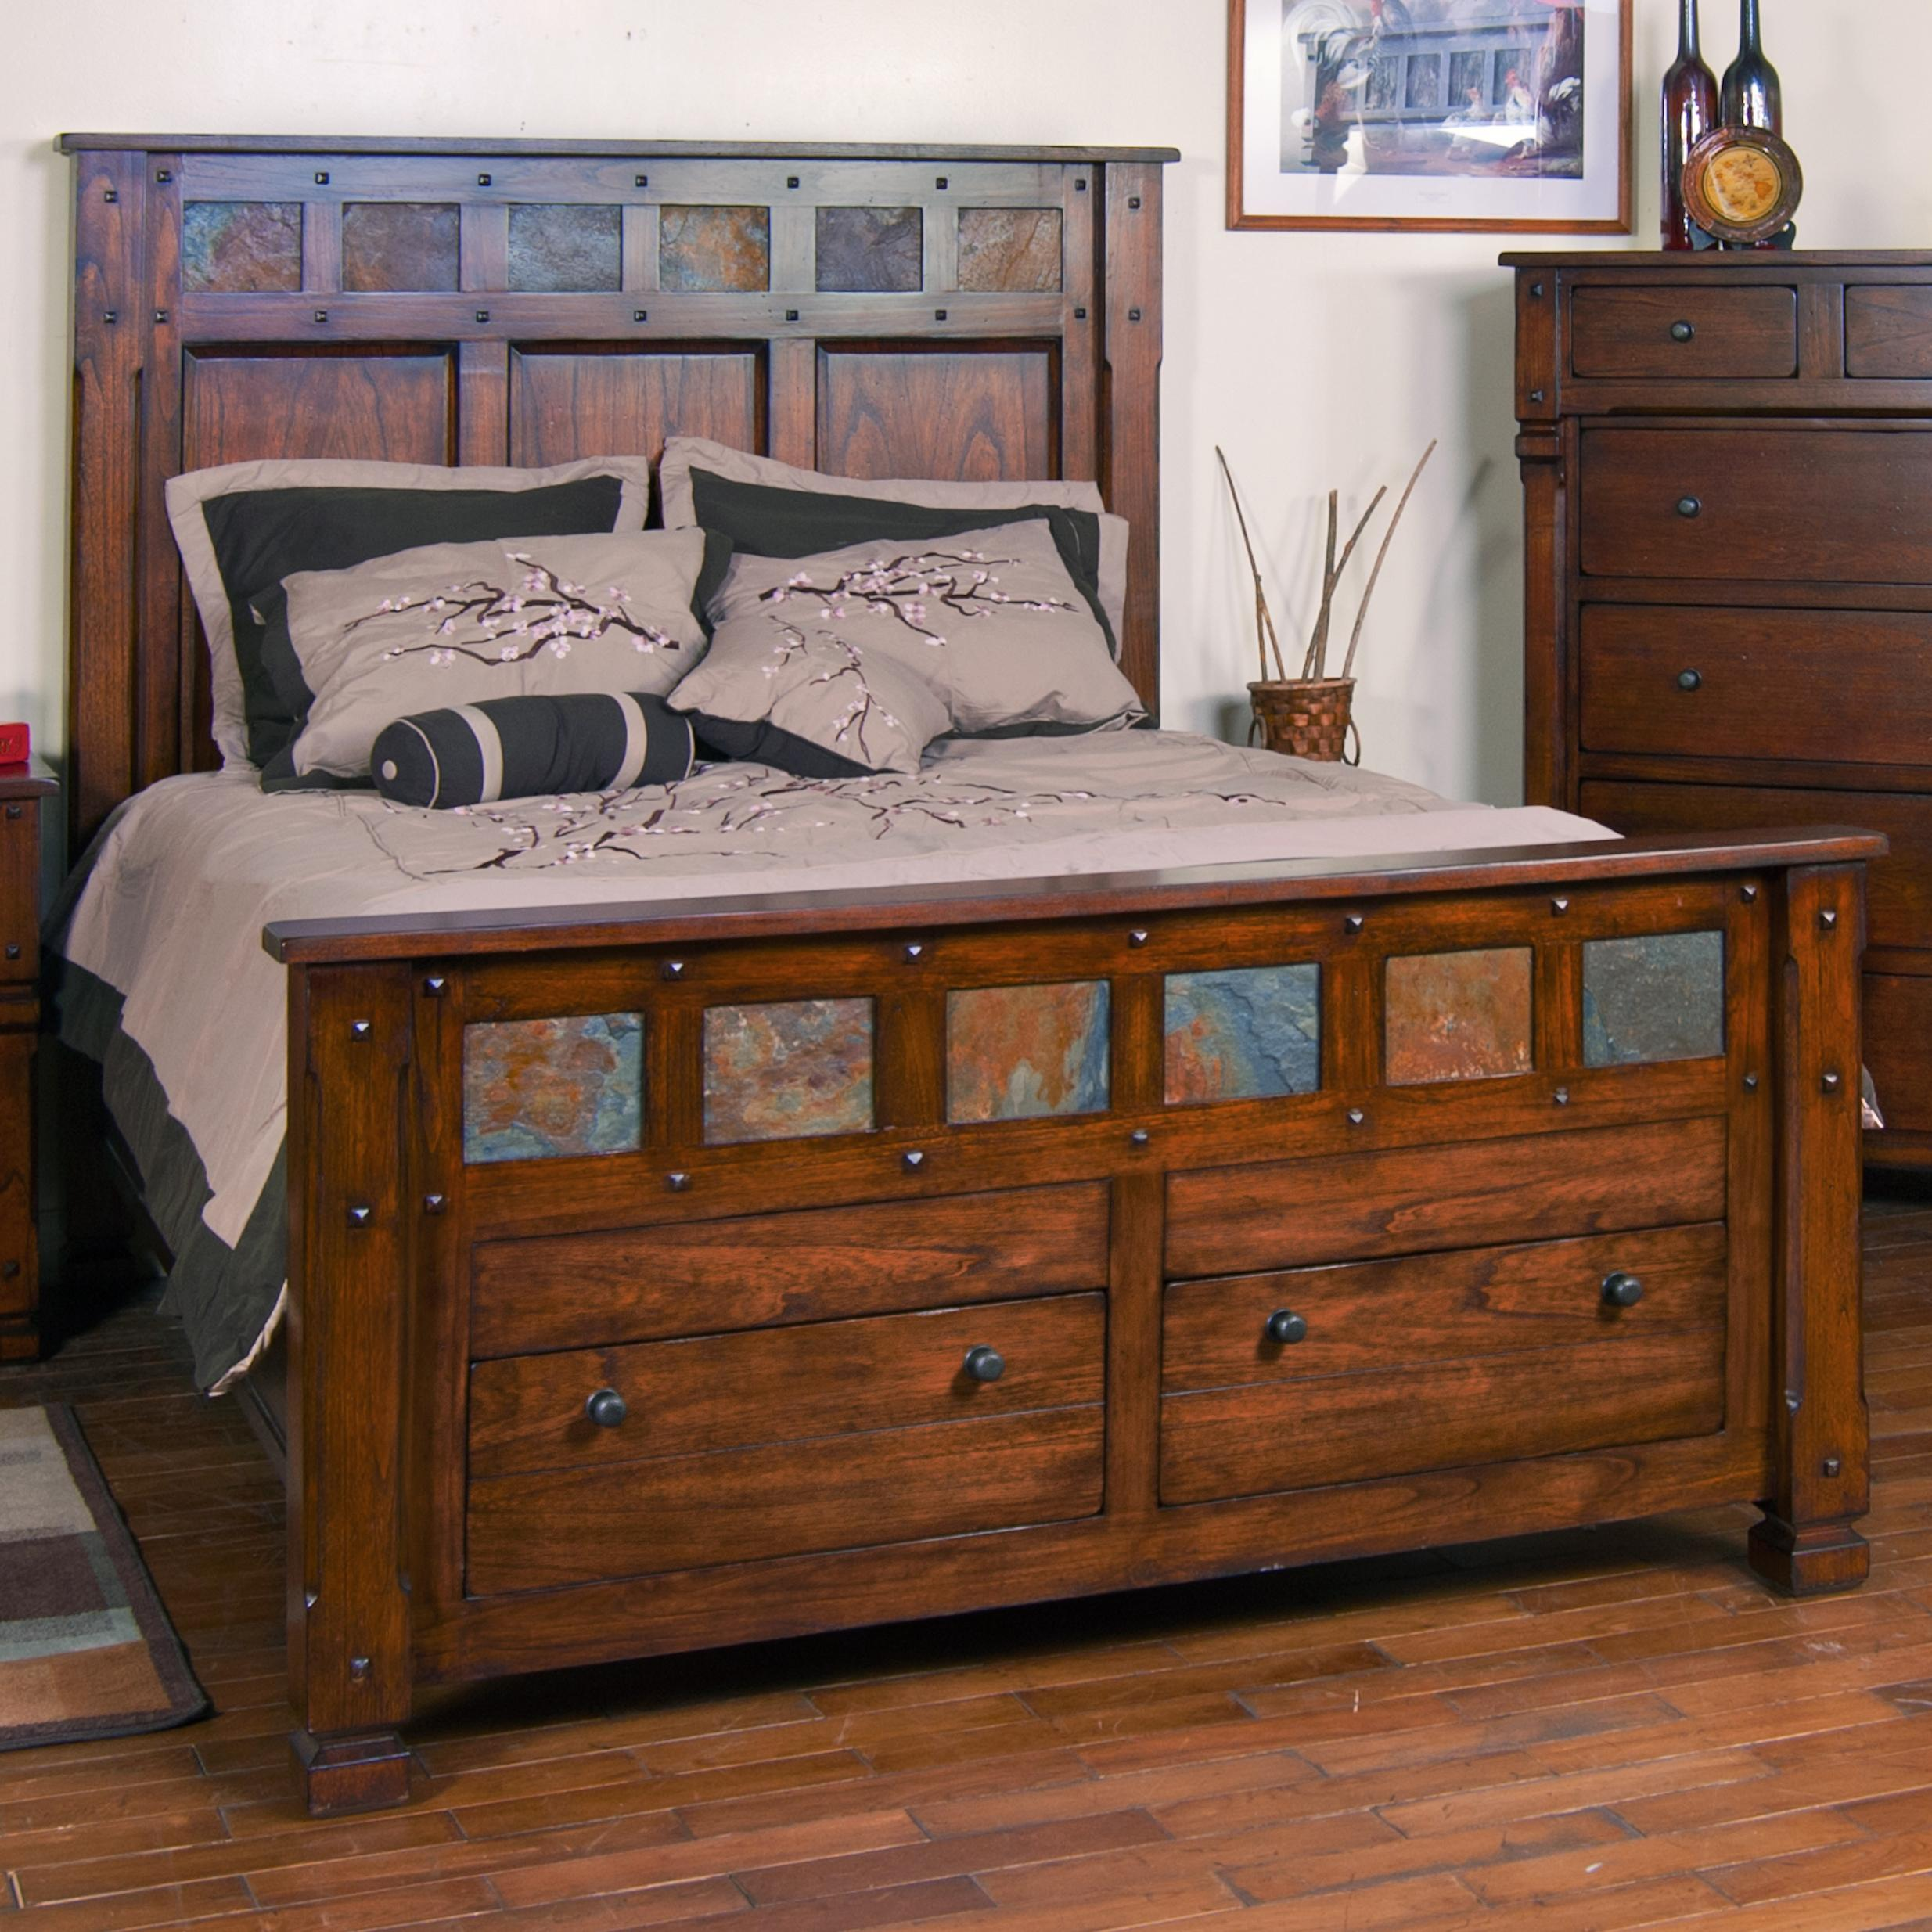 king storage bed with slate by sunny designs wolf and gardiner wolf furniture. Black Bedroom Furniture Sets. Home Design Ideas